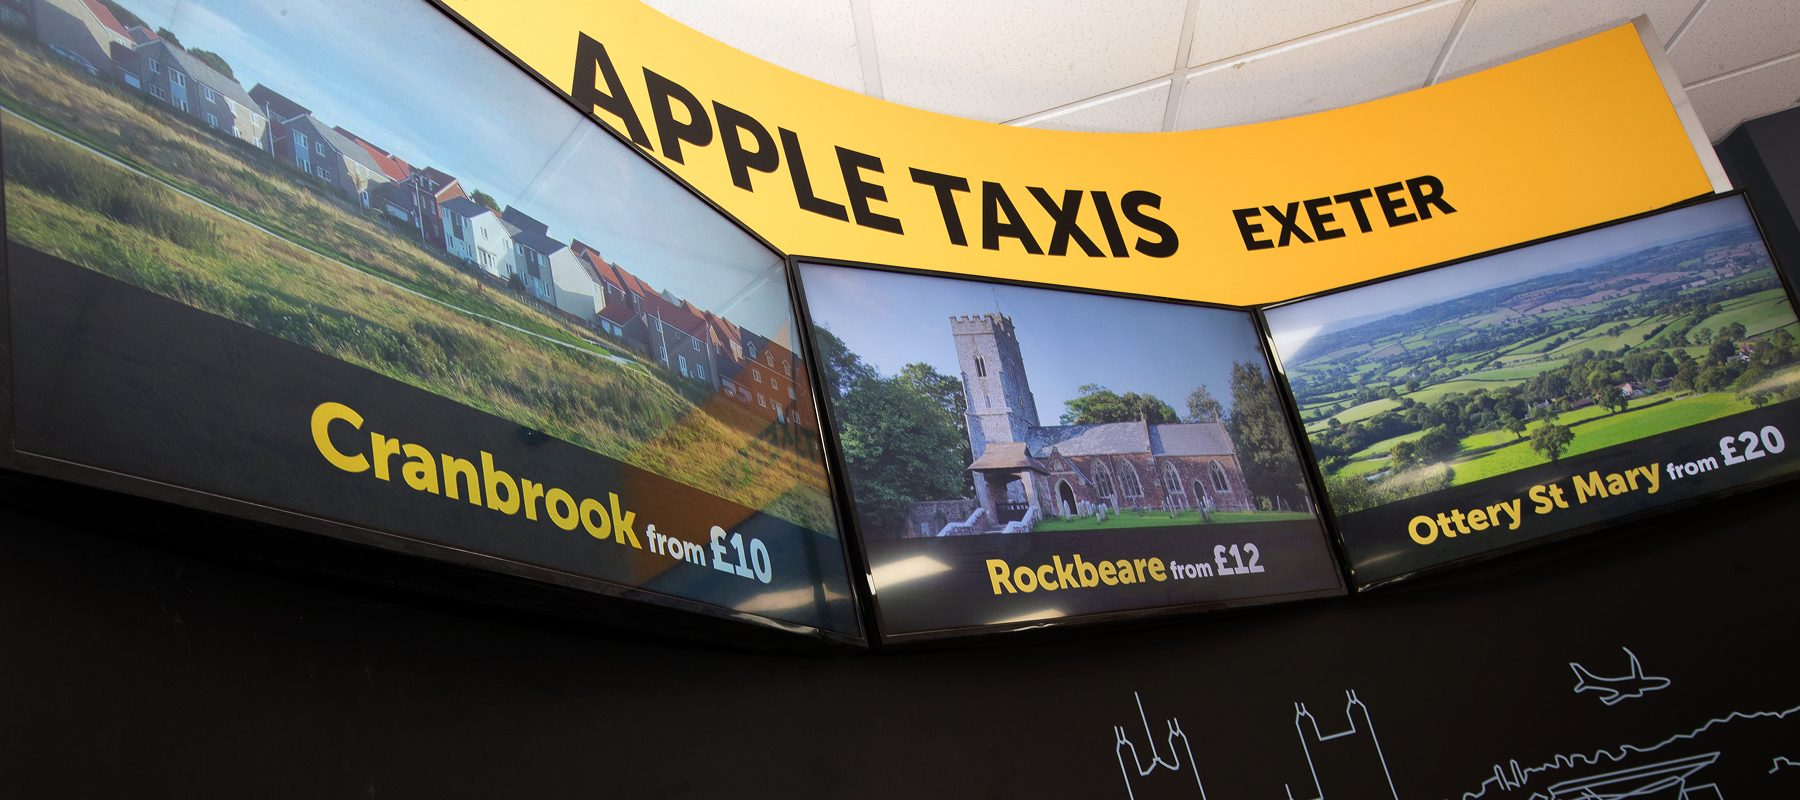 It's Location, Location, Location for Apple Taxis